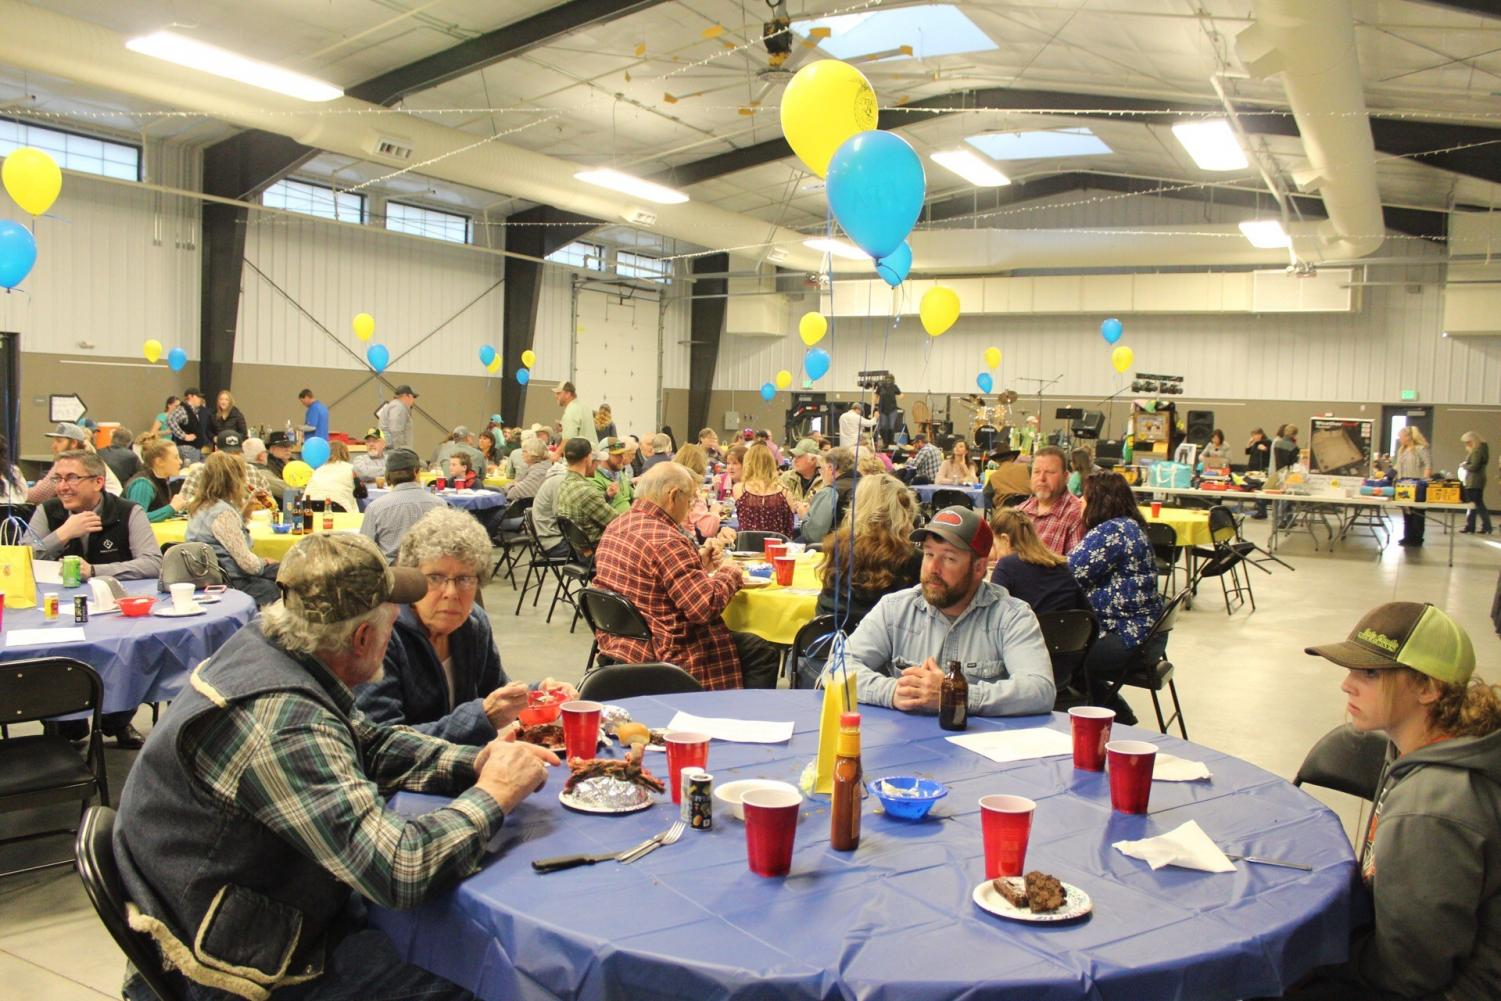 FFA Dinner Dance goers converse and eat at the Park County Fairgrounds.